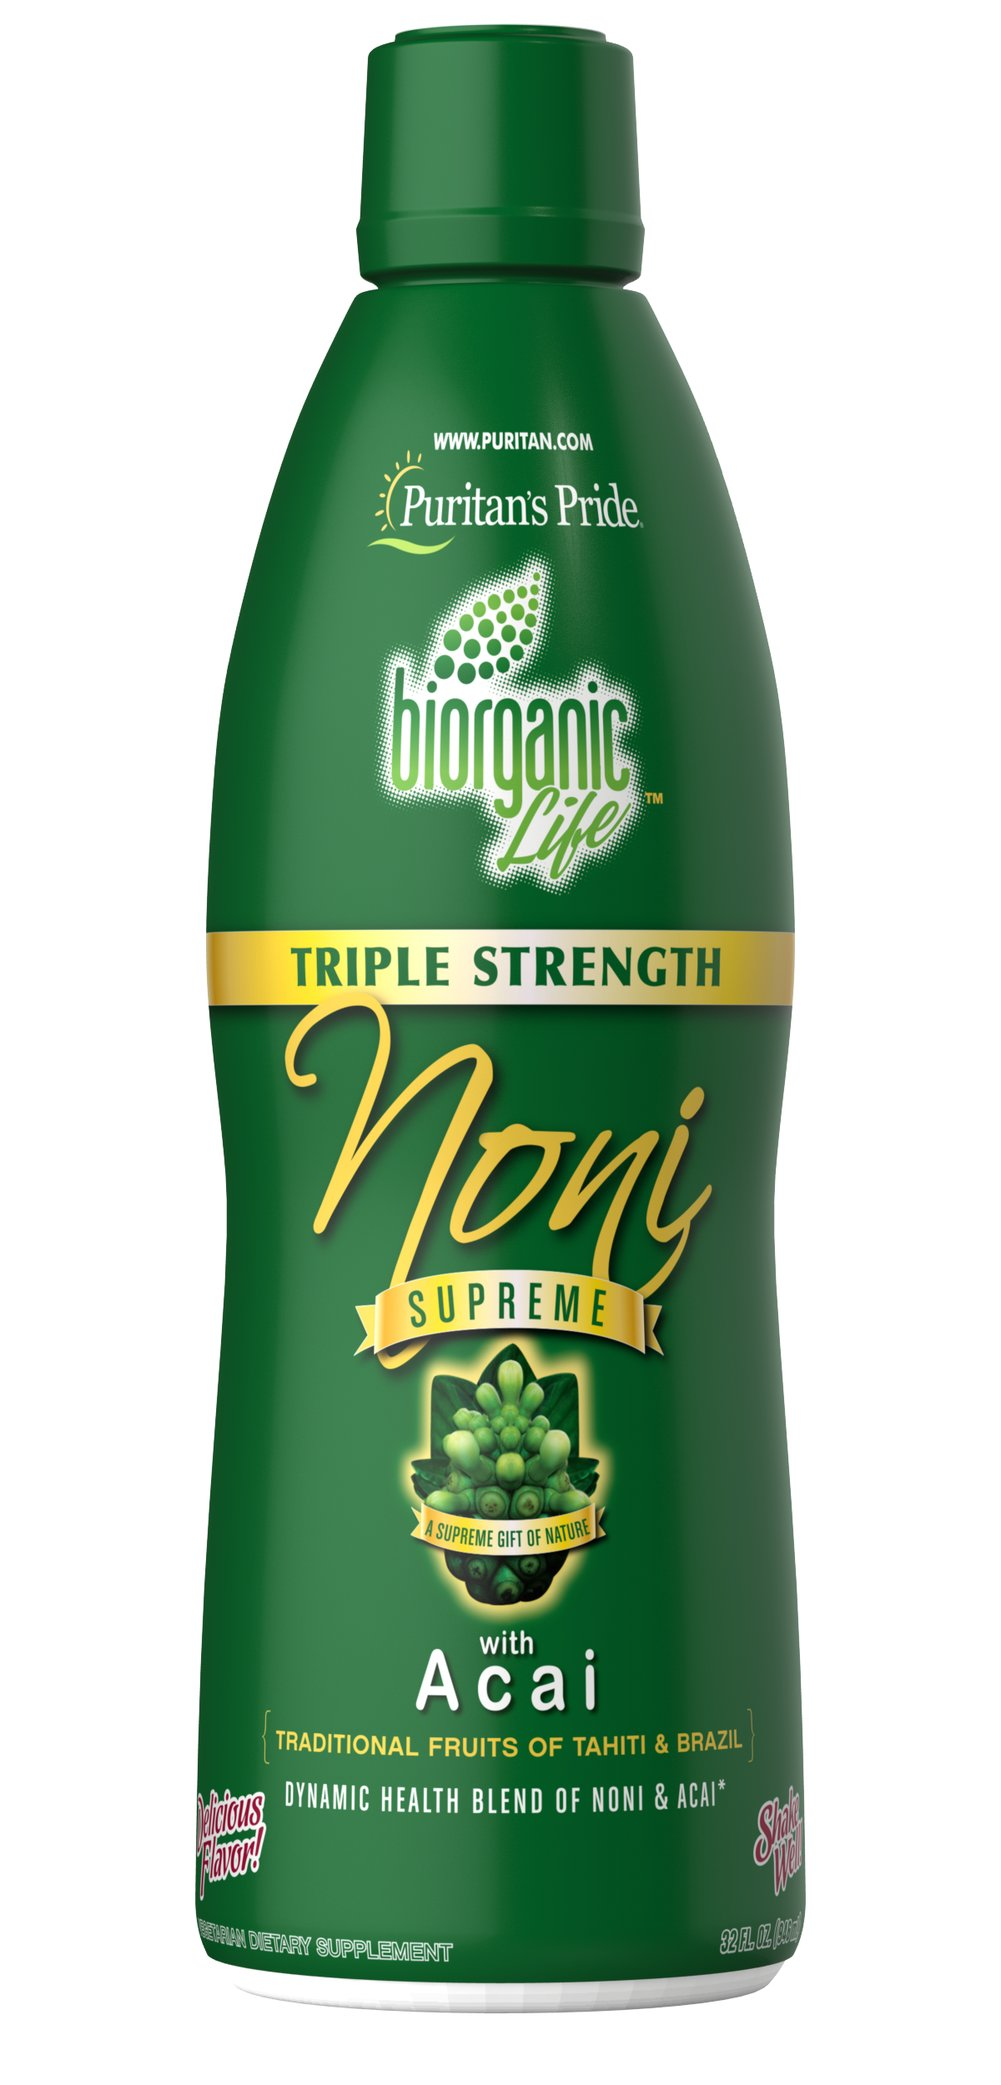 Triple Strength Noni Supreme Juice with Acai <p></p><ul><li>- Synergistic Health Blend of Noni & Acai**</li><li>Traditional Fruits of Tahiti & Brazil</li><li>Delicious Flavor</li><li>Supreme Gift of Nature<br /></li></ul><p>Discover the healthful gifts from the paradise where time began in the goodness of Noni Supreme. This exciting supplement contains Noni, which is sourced from Tahiti and Hawaii